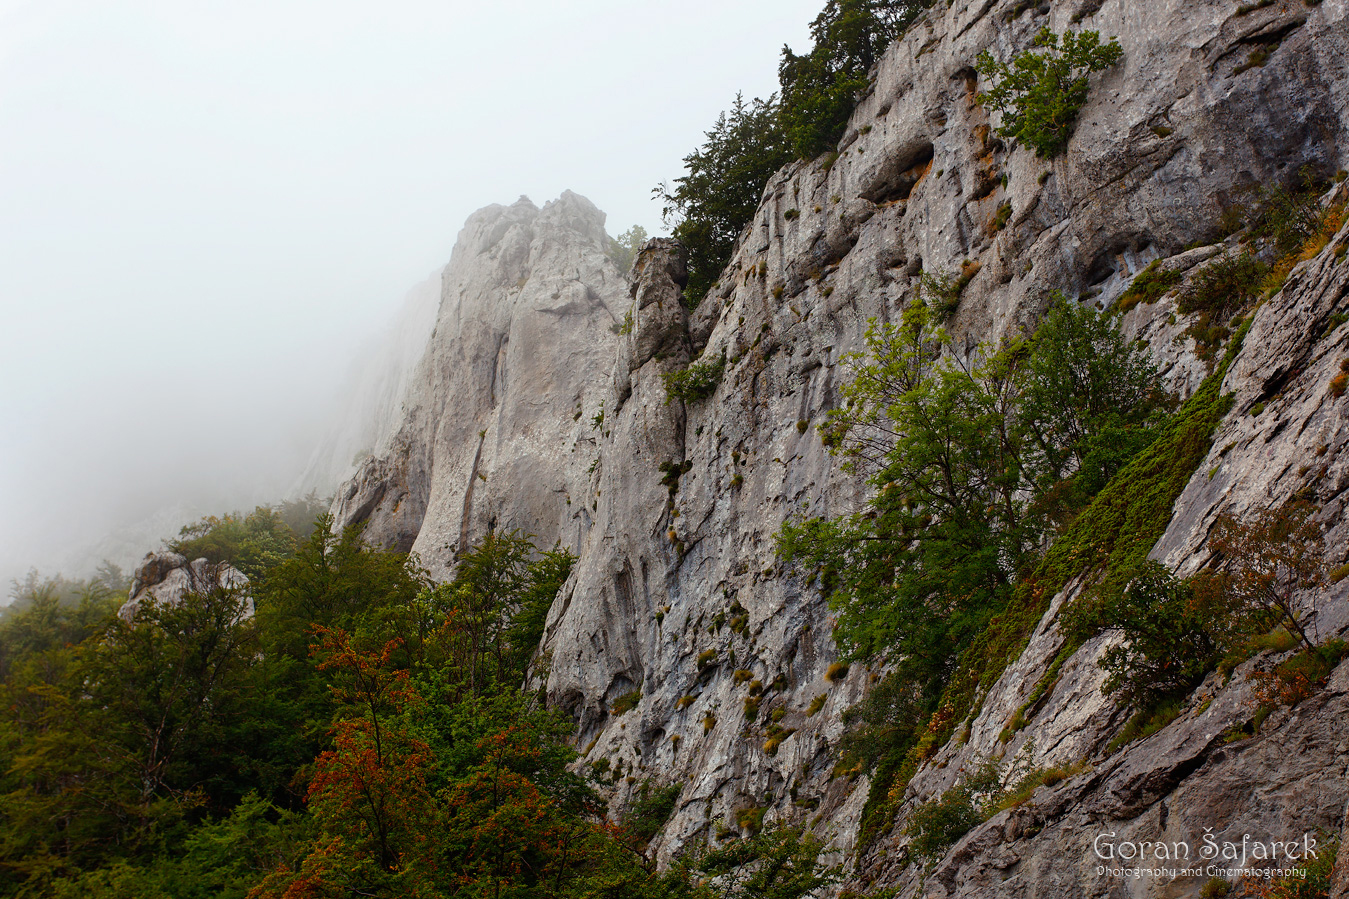 croatia, mountains, hiking, alpinism, summit, fog